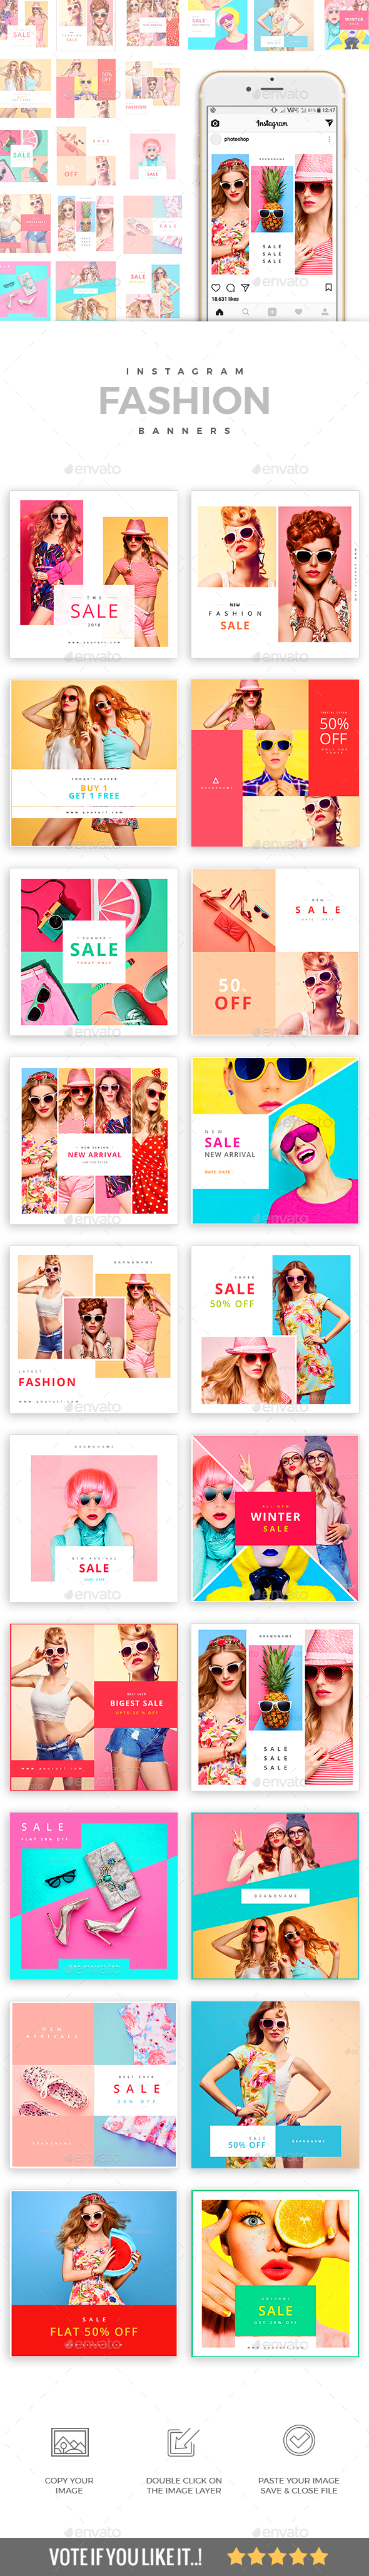 GraphicRiver 20 Fashion Instagram Banners 21158757